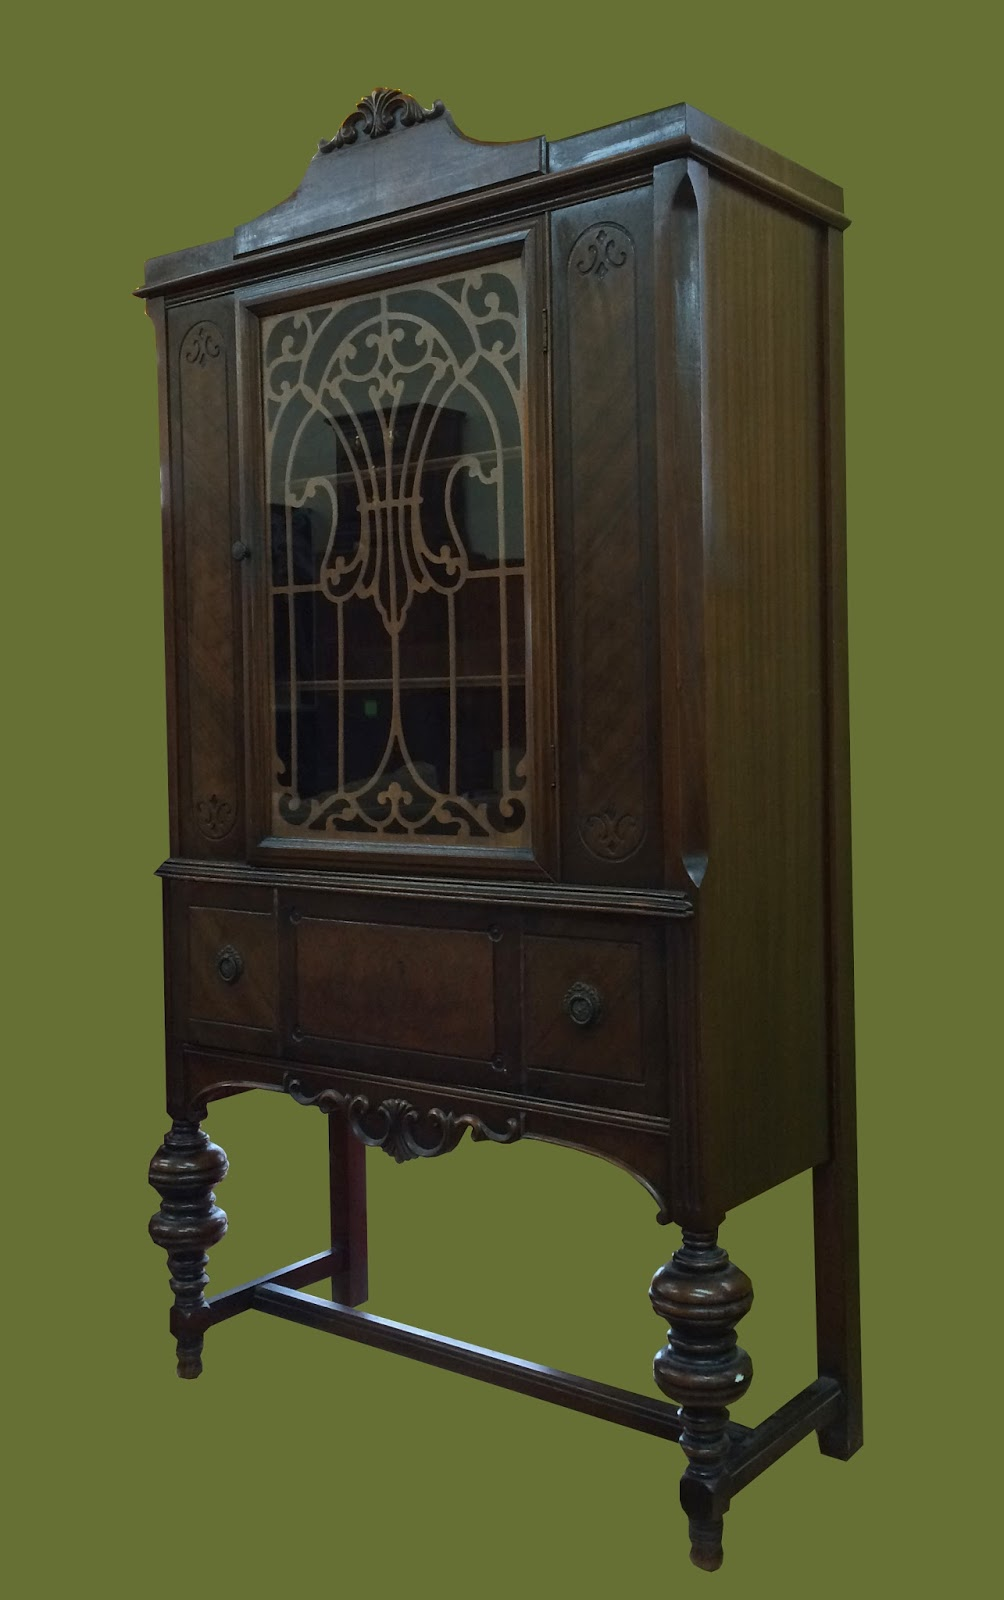 uhuru furniture & collectibles: vintage 1930s walnut dining room